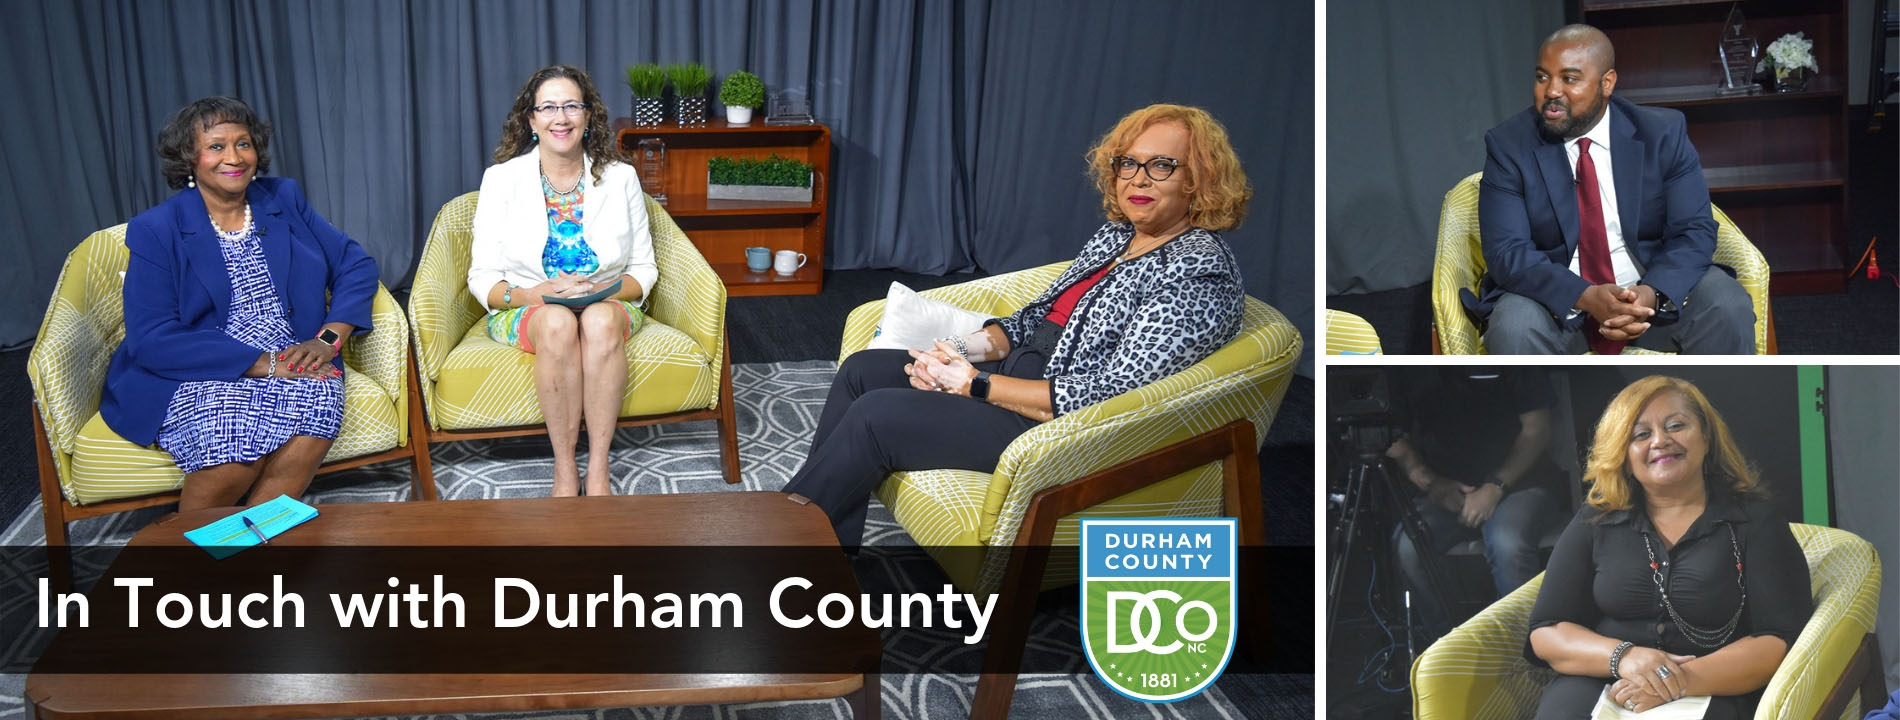 In Touch with Durham County promo with guests J.T. Tabron and Sharon Marsh from Register of Deeds on right photos; hosts Deborah Craig-Ray and Wendy Jacobs with guest Gayle Harris in left photo